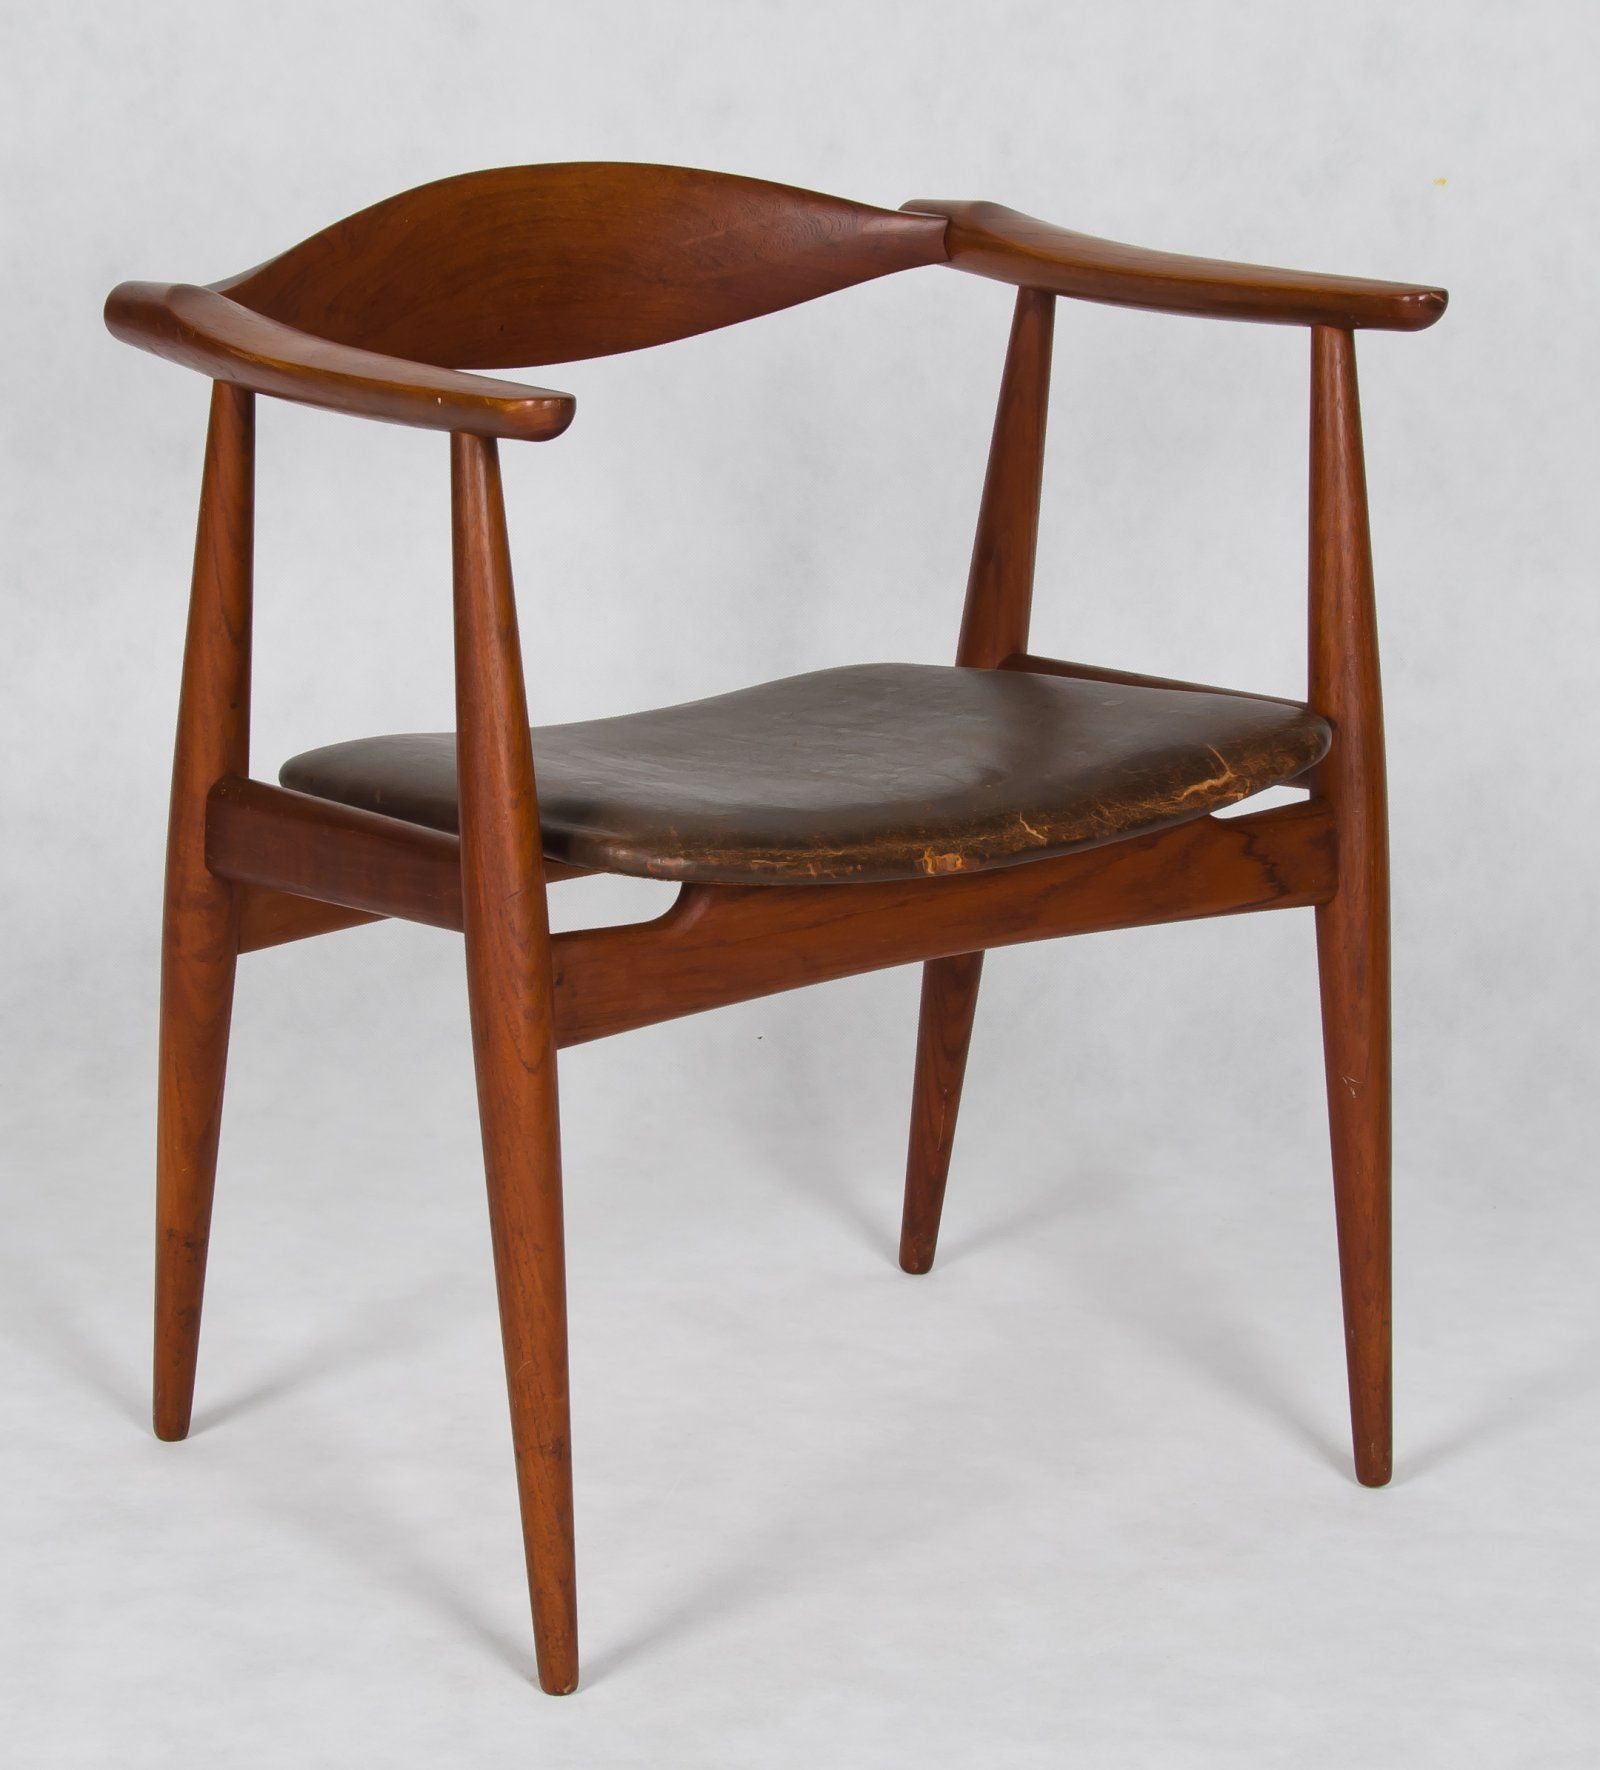 Teak and leather armchair, model CH35, by Hans Wegner